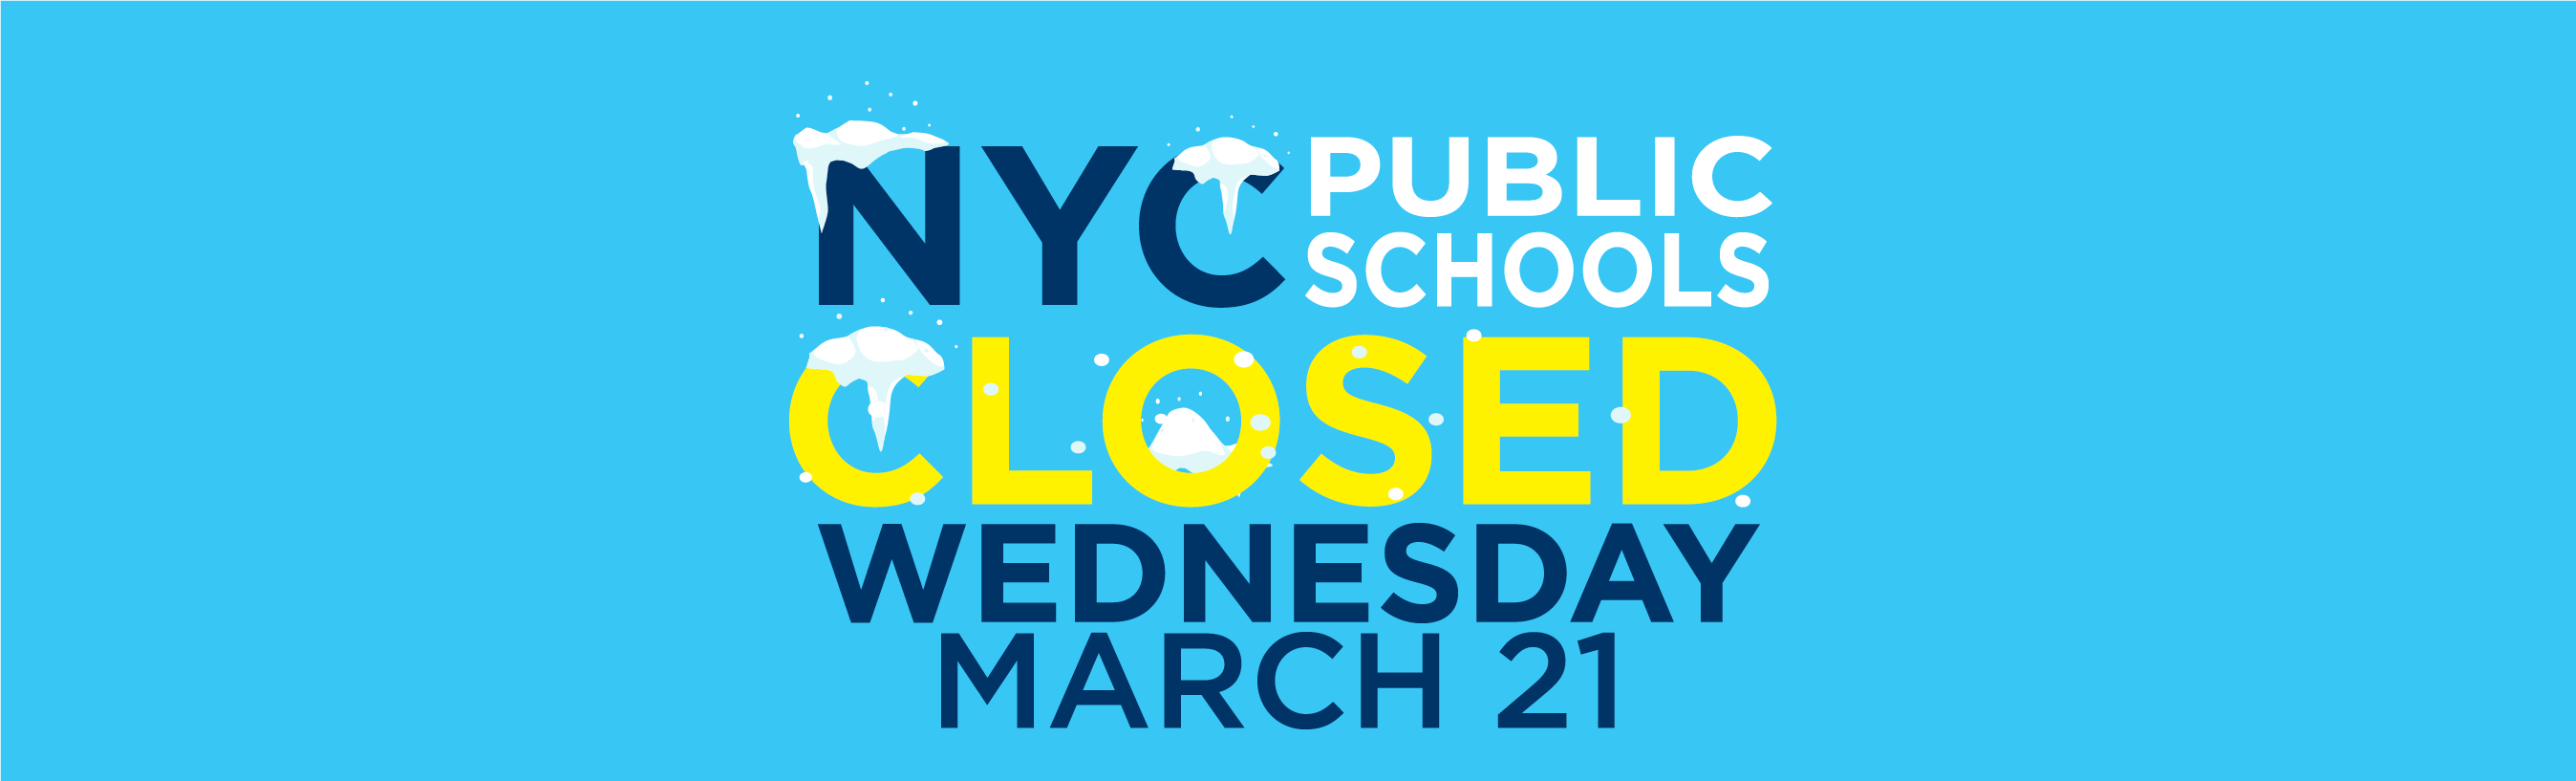 Weather Advisory: All NYC Public Schools Will Be CLOSED on March 21